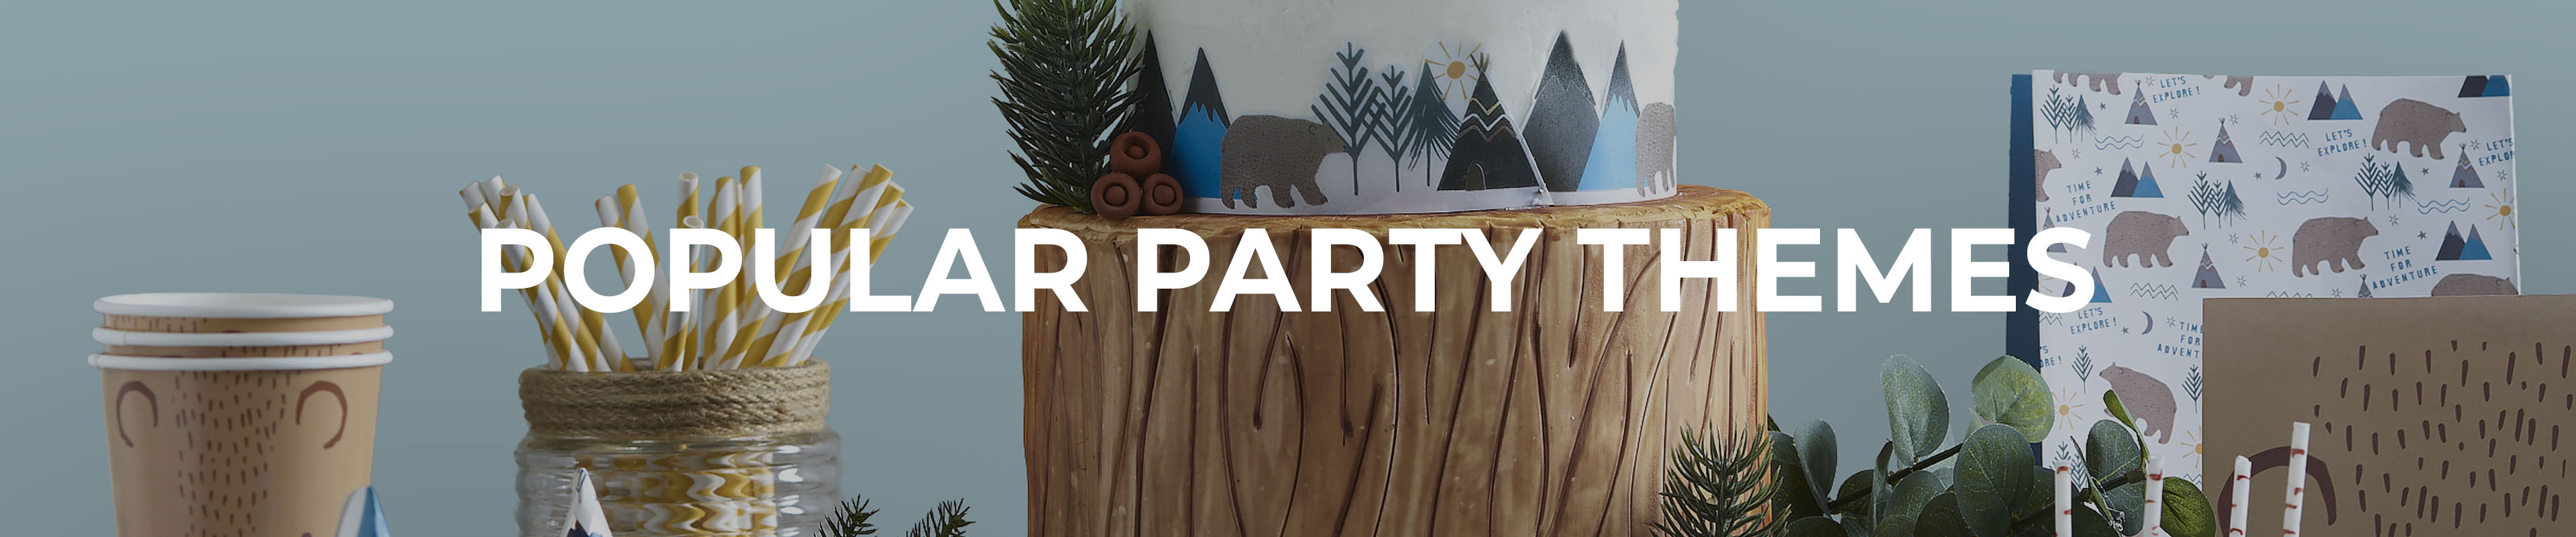 Shop Our Popular Party Themes Range